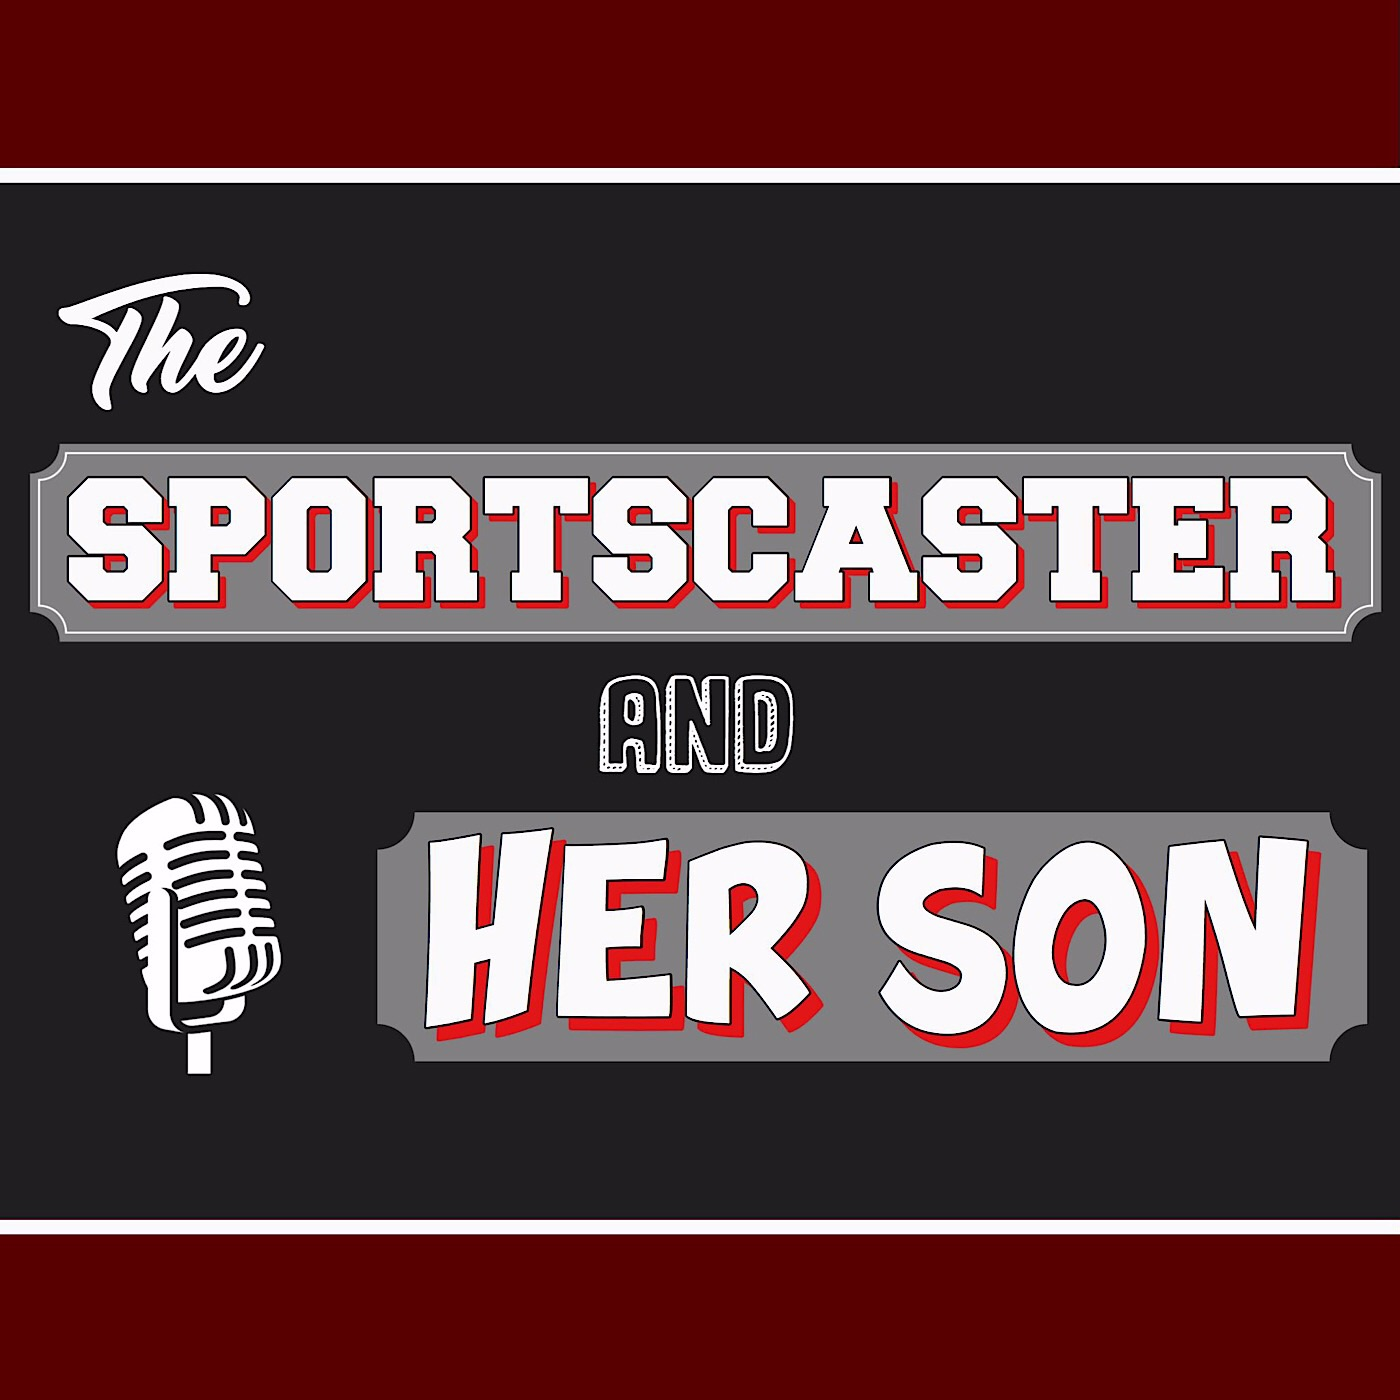 The Sportscaster and Her Son